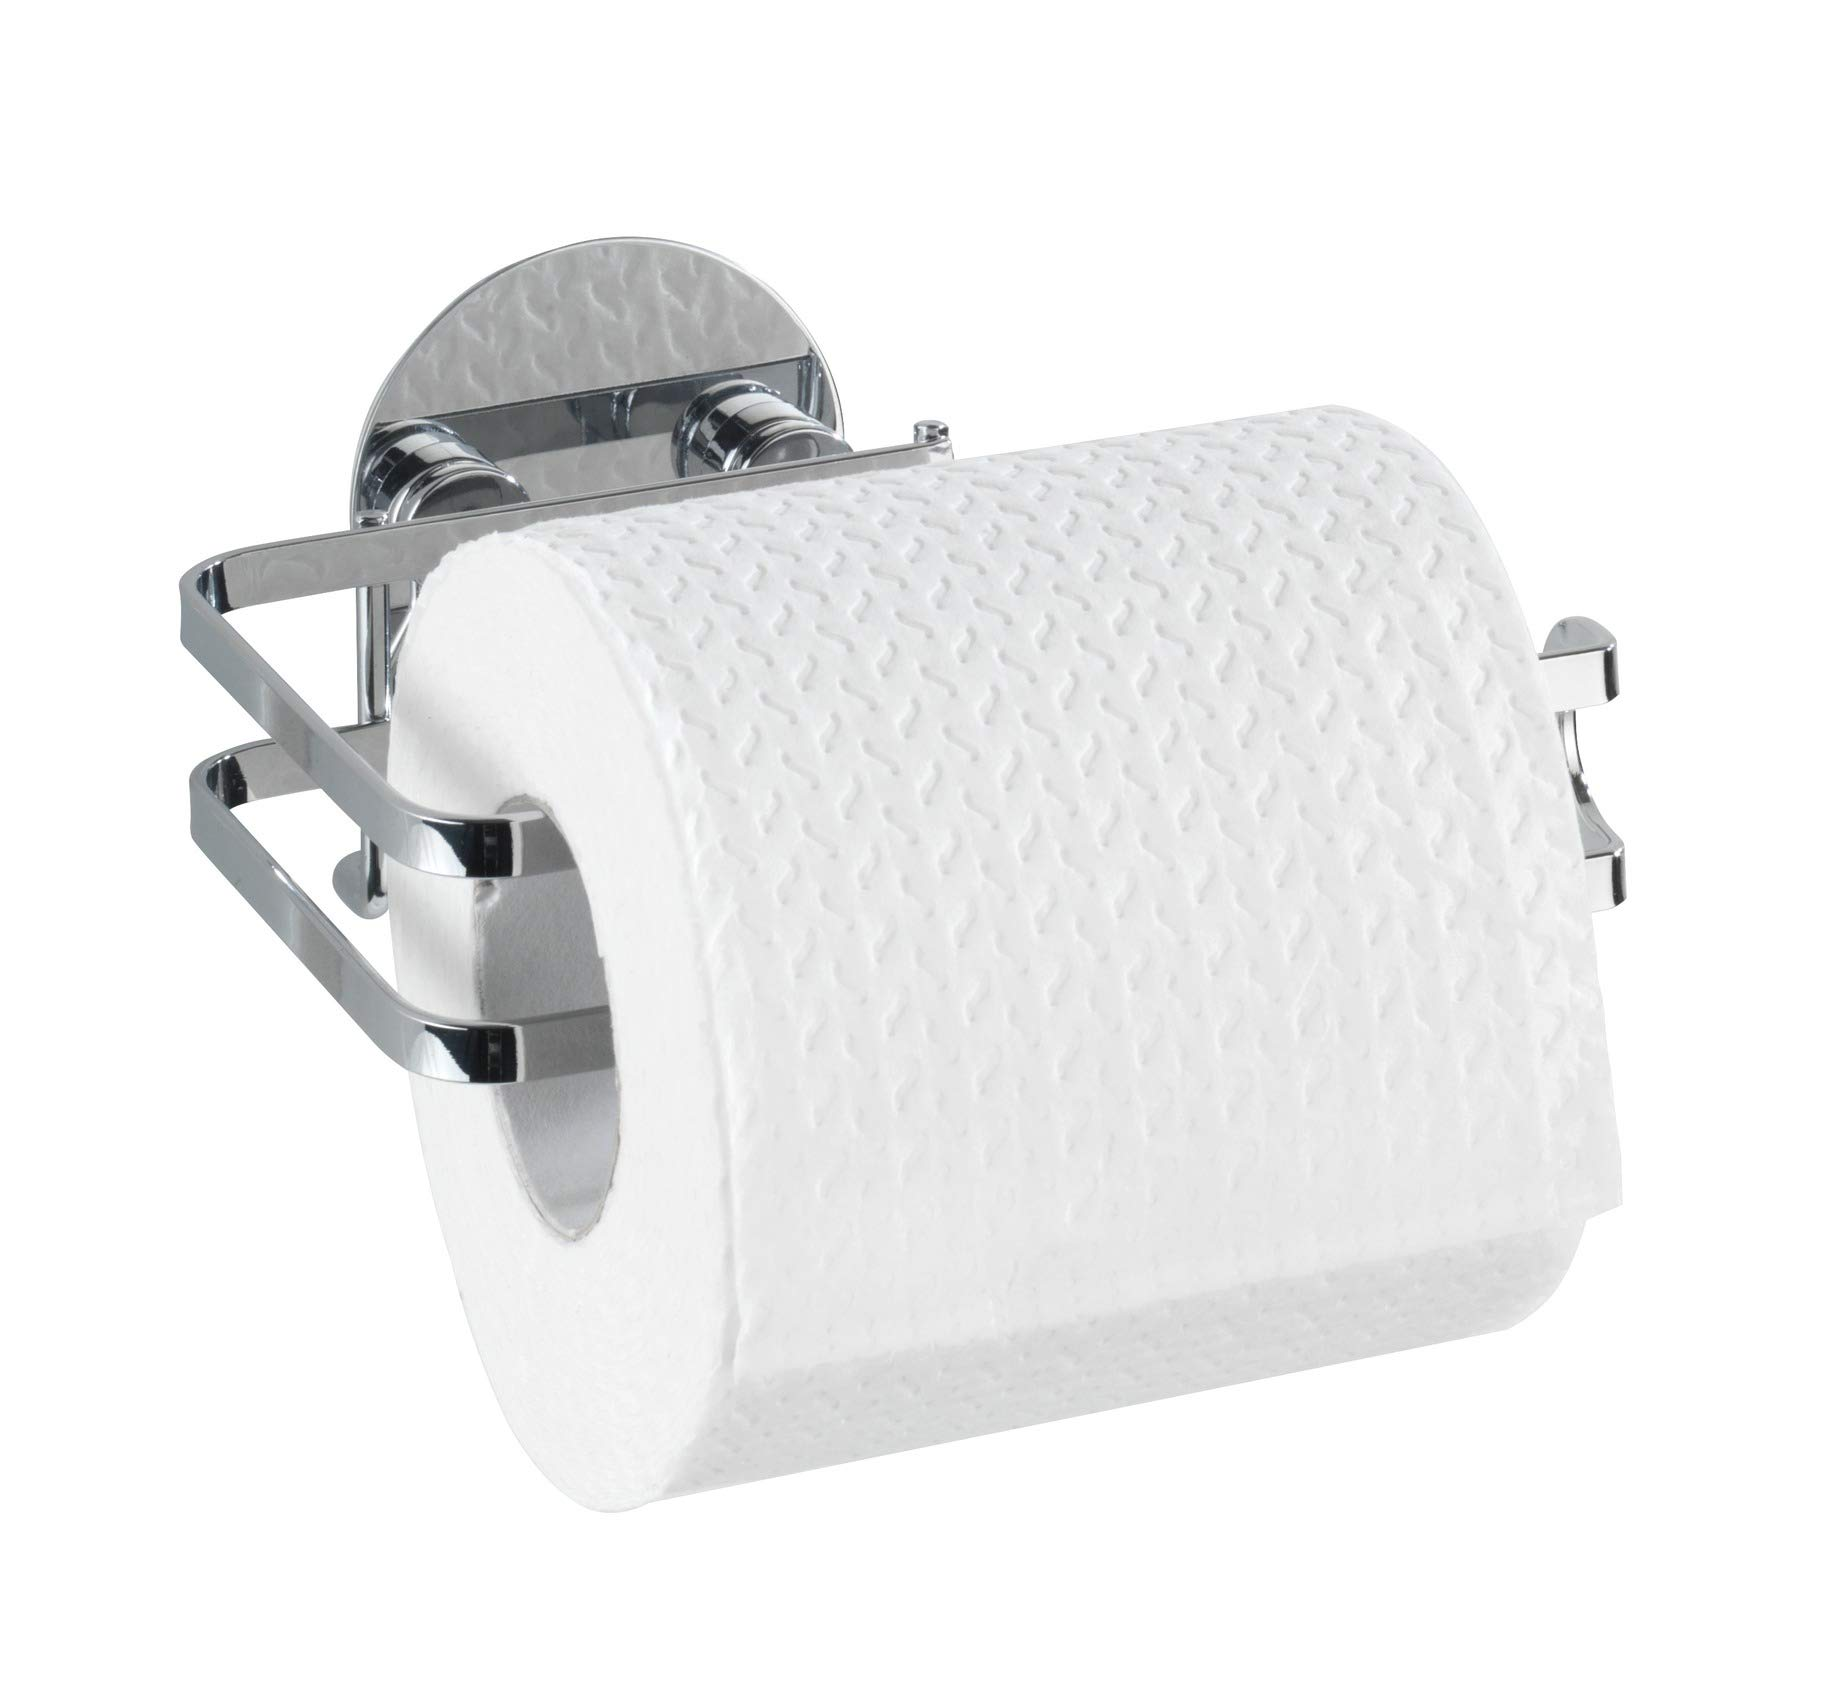 Wenko 21780100 Turbo-Loc Stainless Steel Toilet Paper Holder, 5.3 x 2.8 x 4.3 inch, Shiny by Wenko